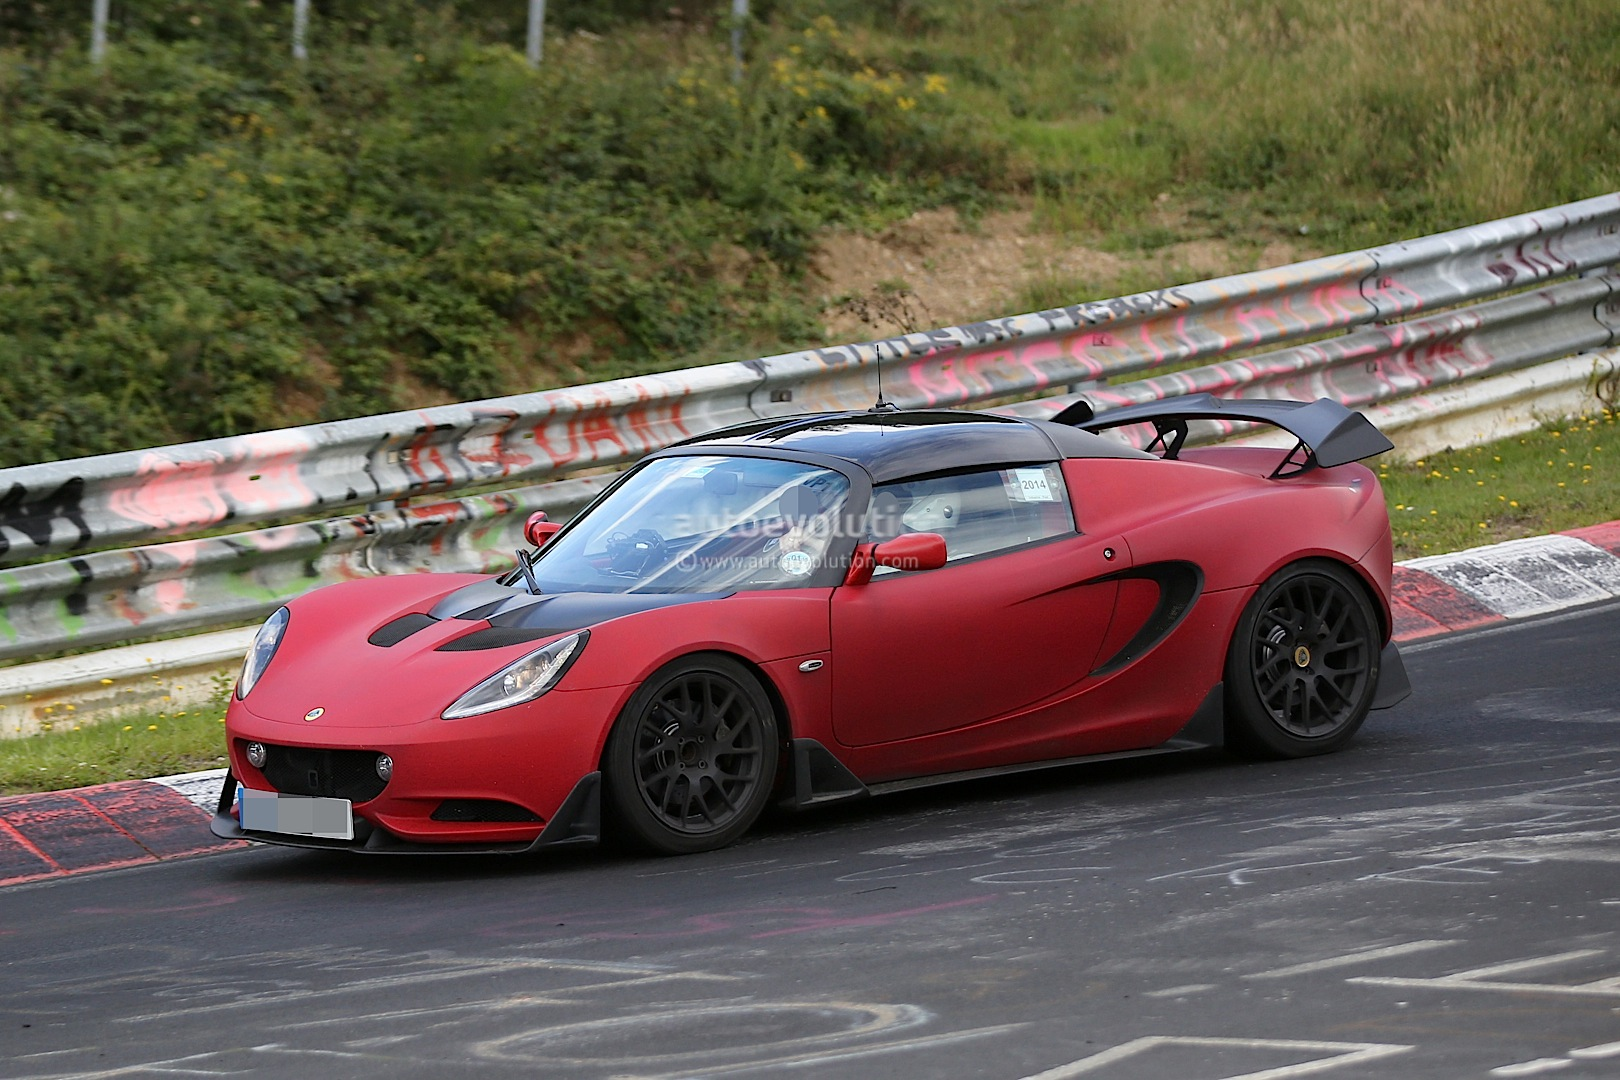 https://s1.cdn.autoevolution.com/images/news/gallery/lotus-elise-r-puts-the-hammer-down-on-the-nurburgring-nordschleife-photo-gallery_10.jpg